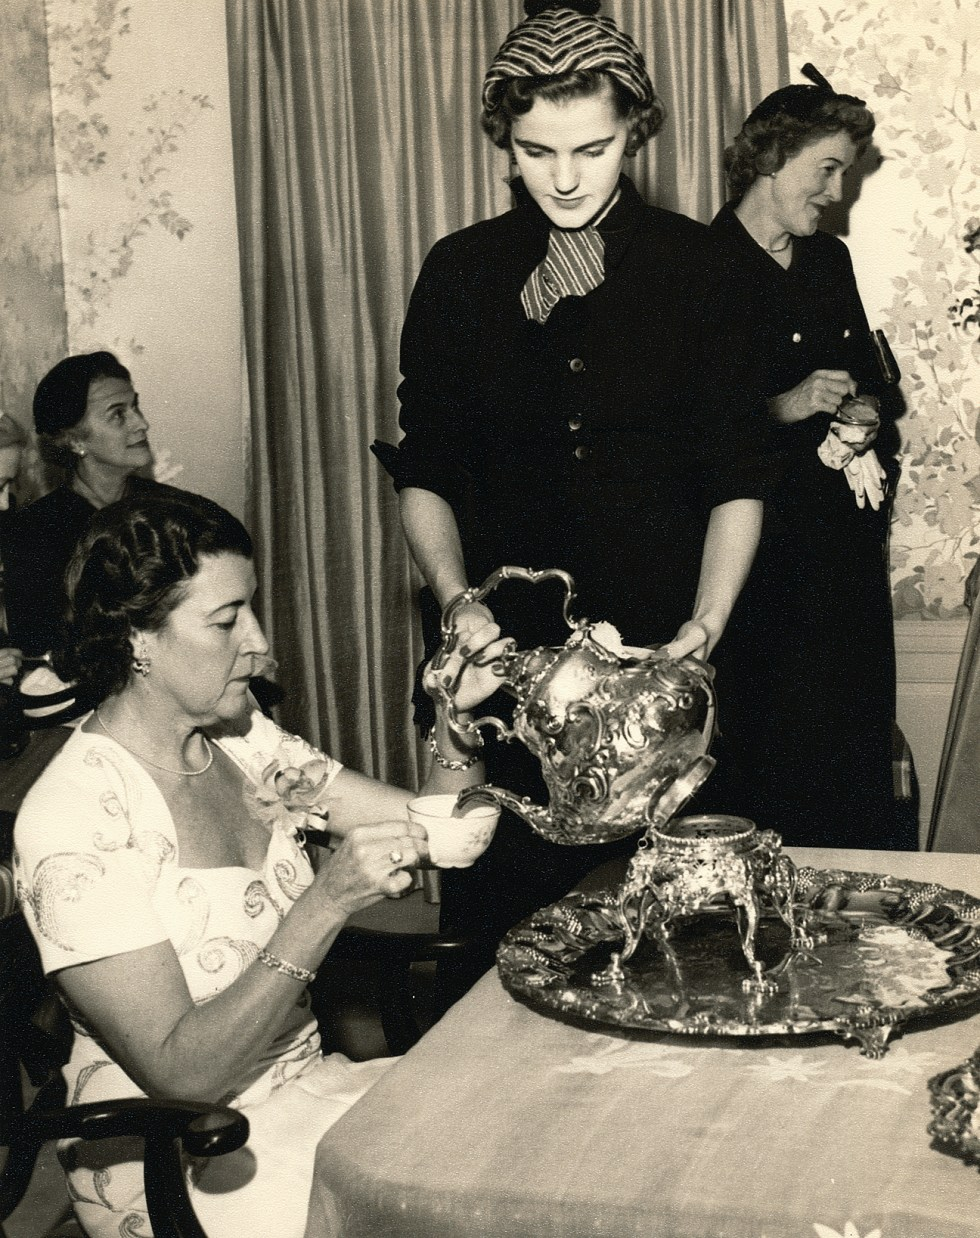 (above) Here my poor mother is pouring tea. She and I both hated teas. The same goes for luncheons.